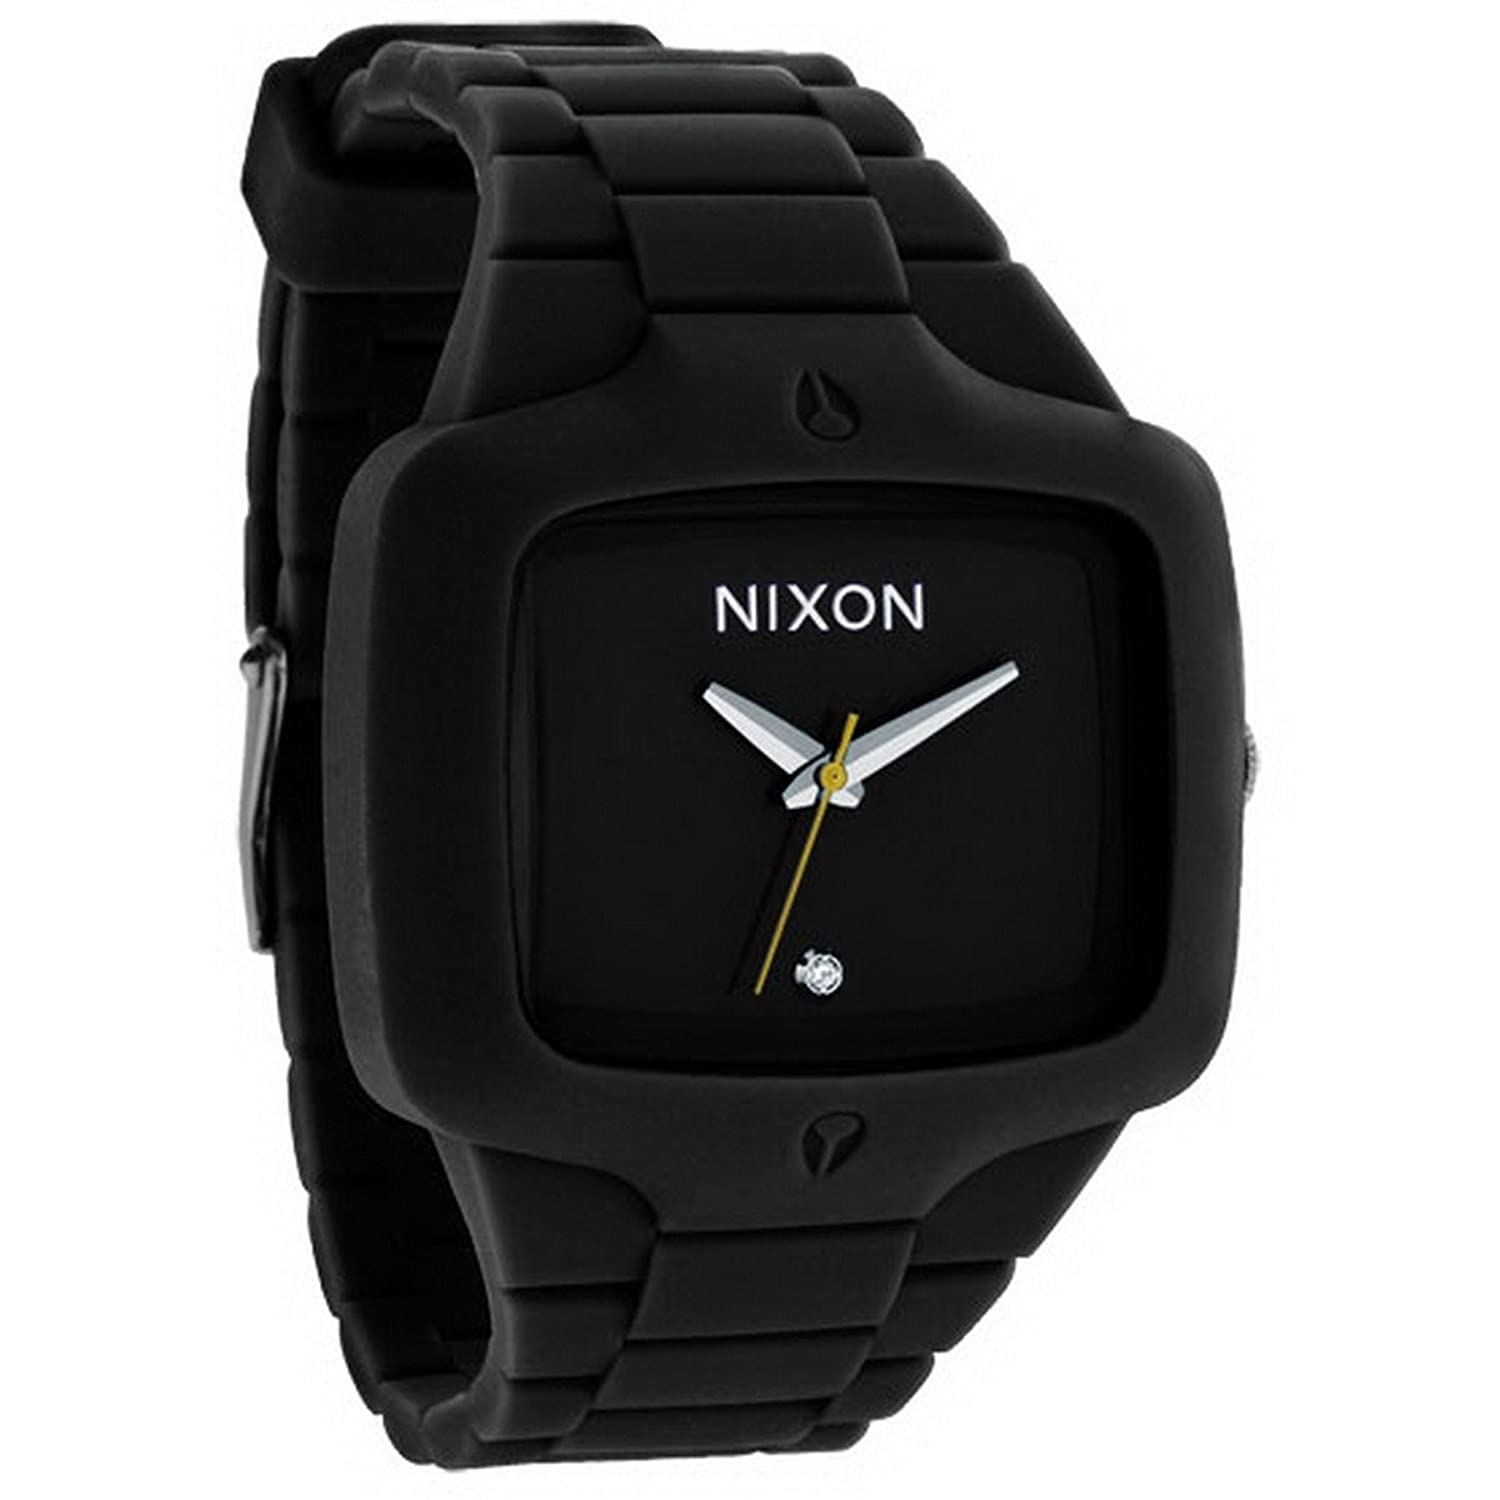 amazon com nixon the rubber player men s watch a139 000 nixon amazon com nixon the rubber player men s watch a139 000 nixon watches